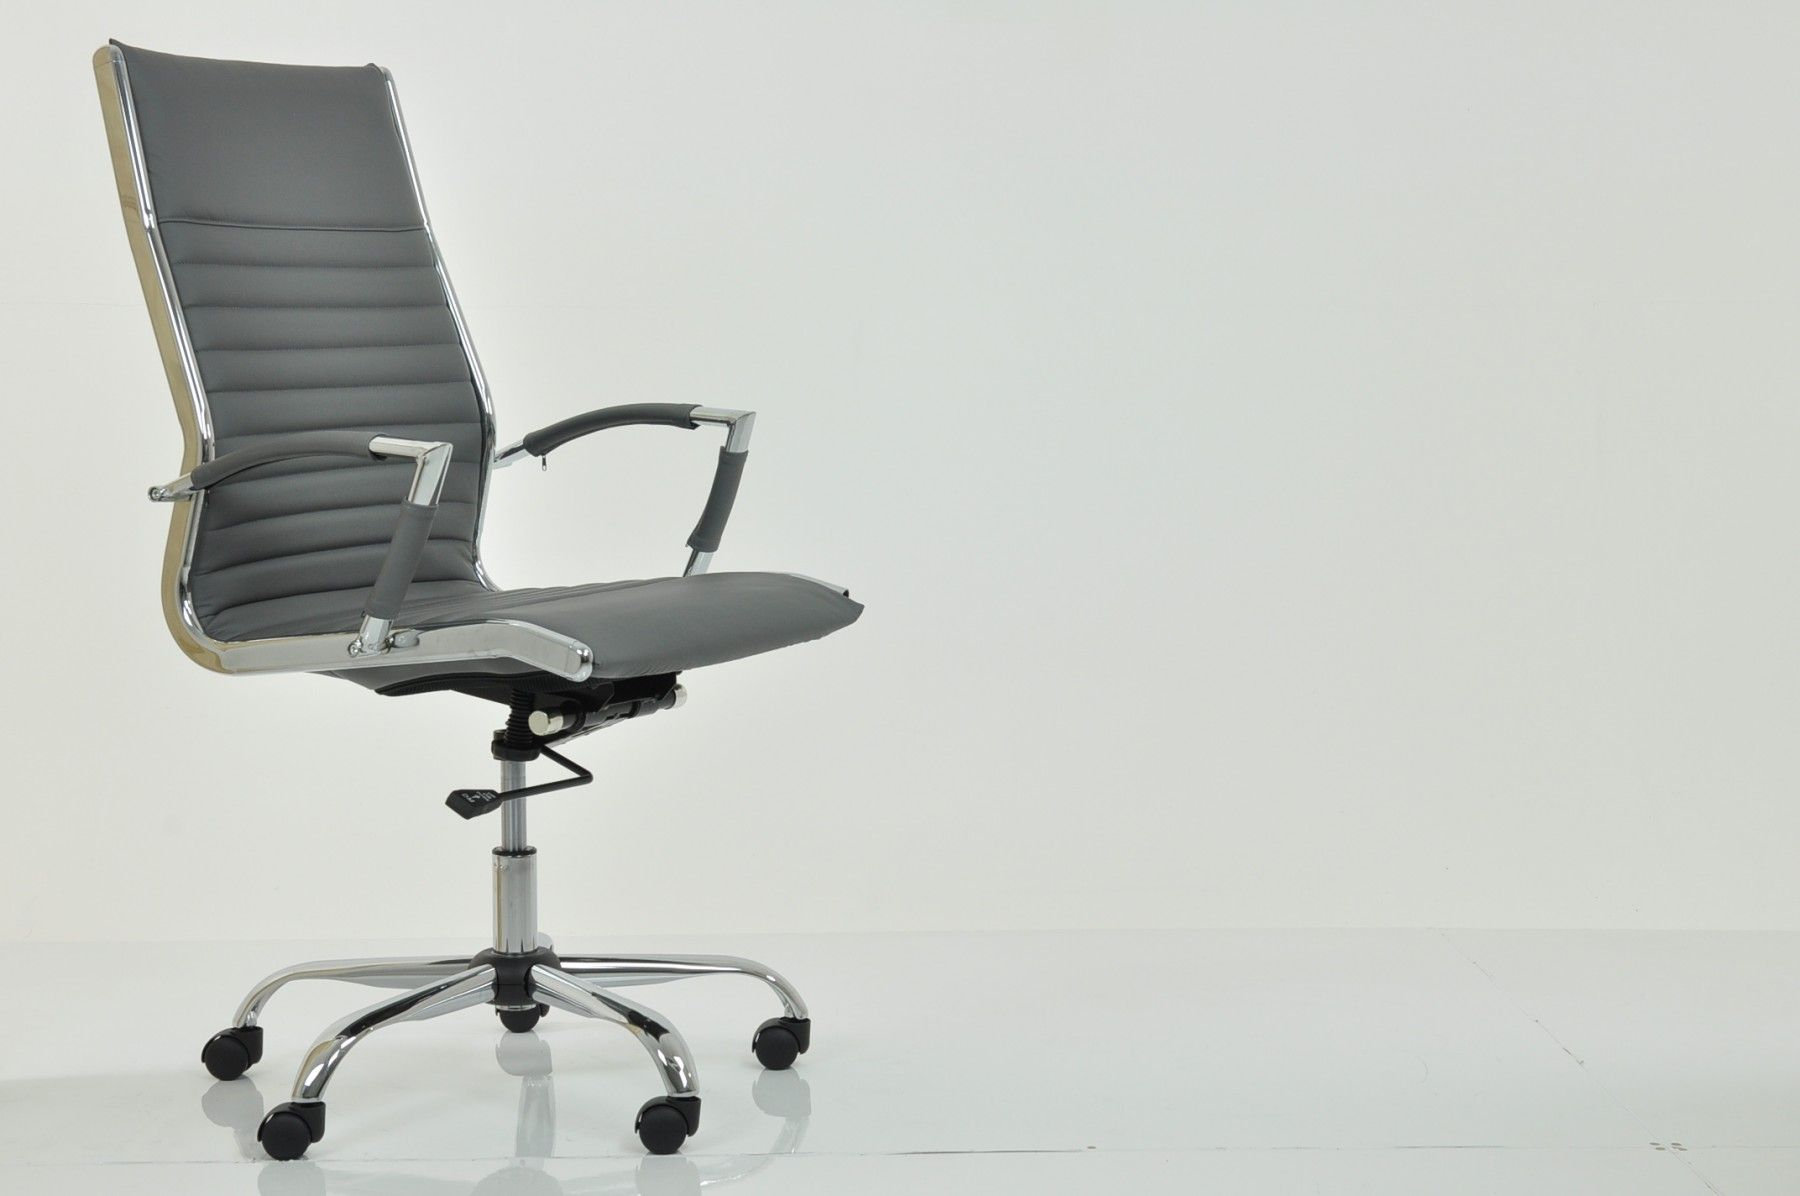 buyhouse hinton grey chair online house johnlewis rsp john at com pdp office by lewis main